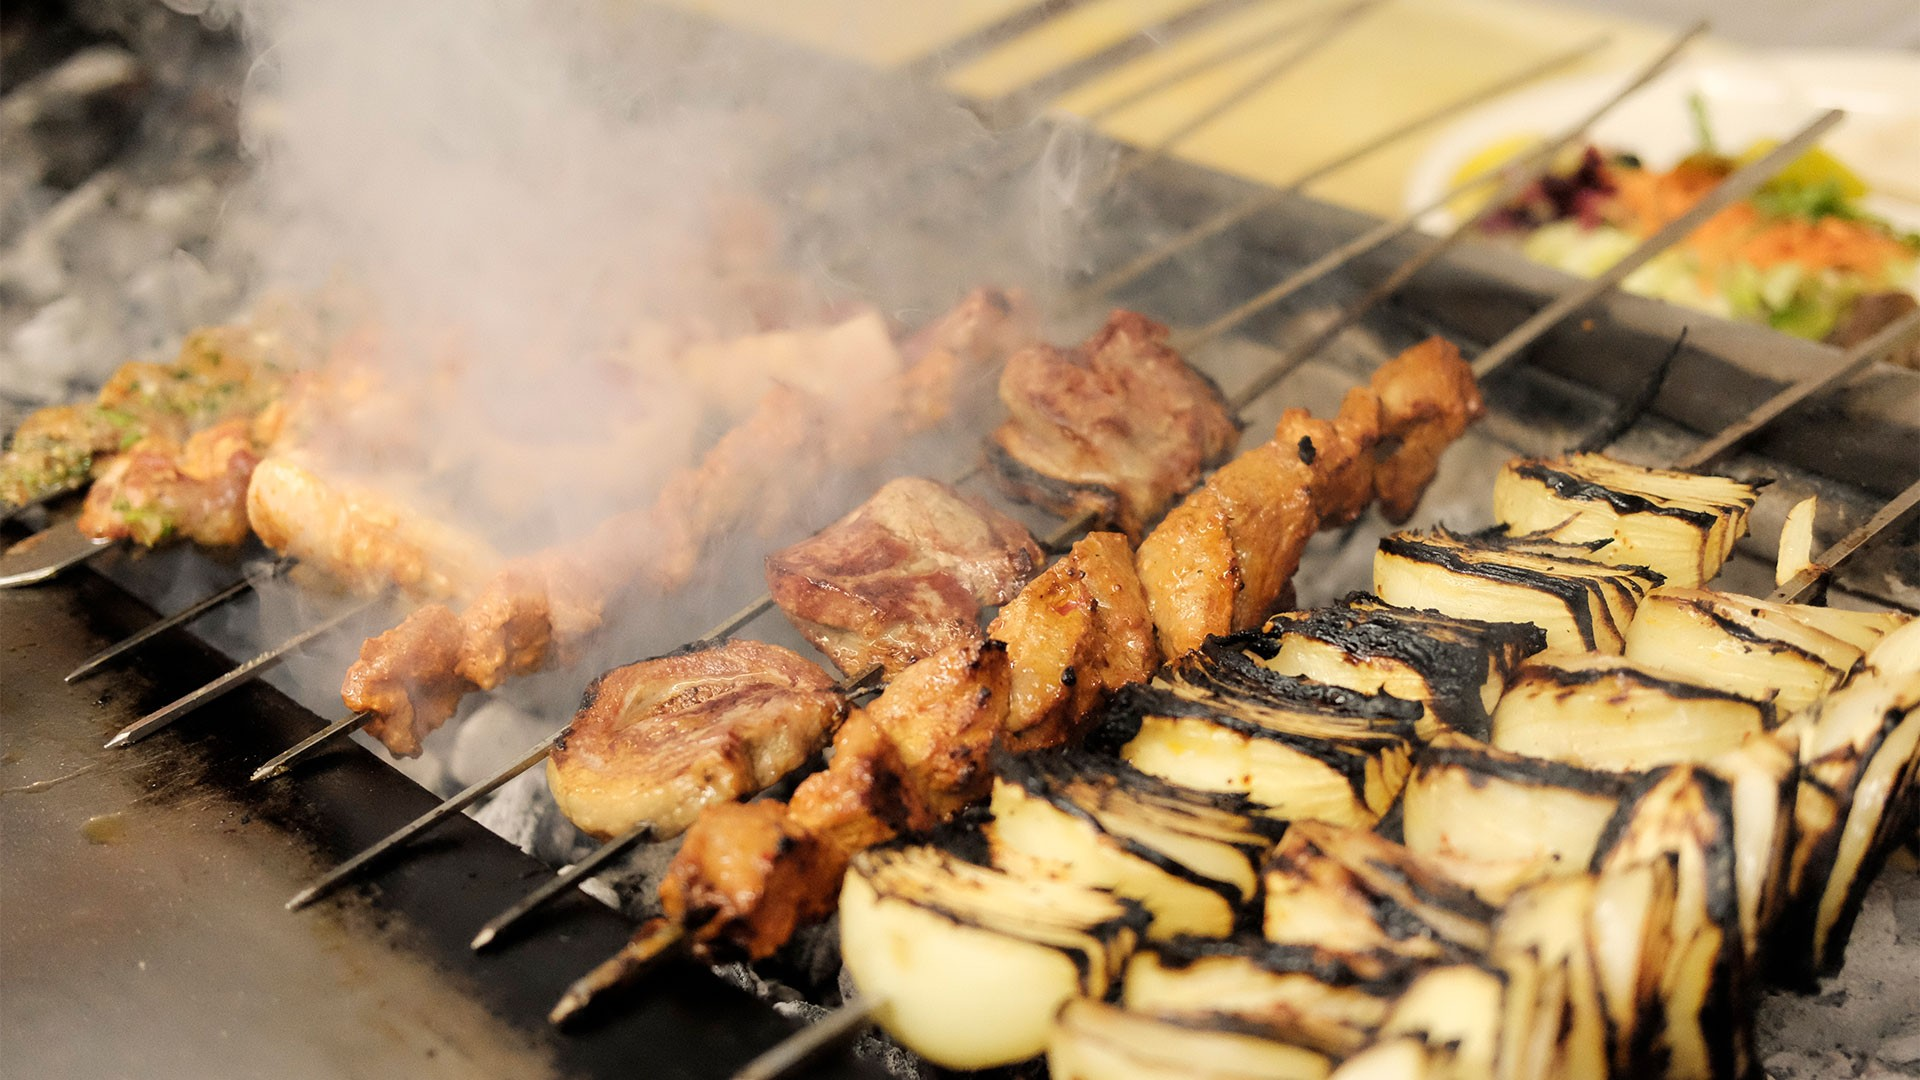 The grill at Mangal 2